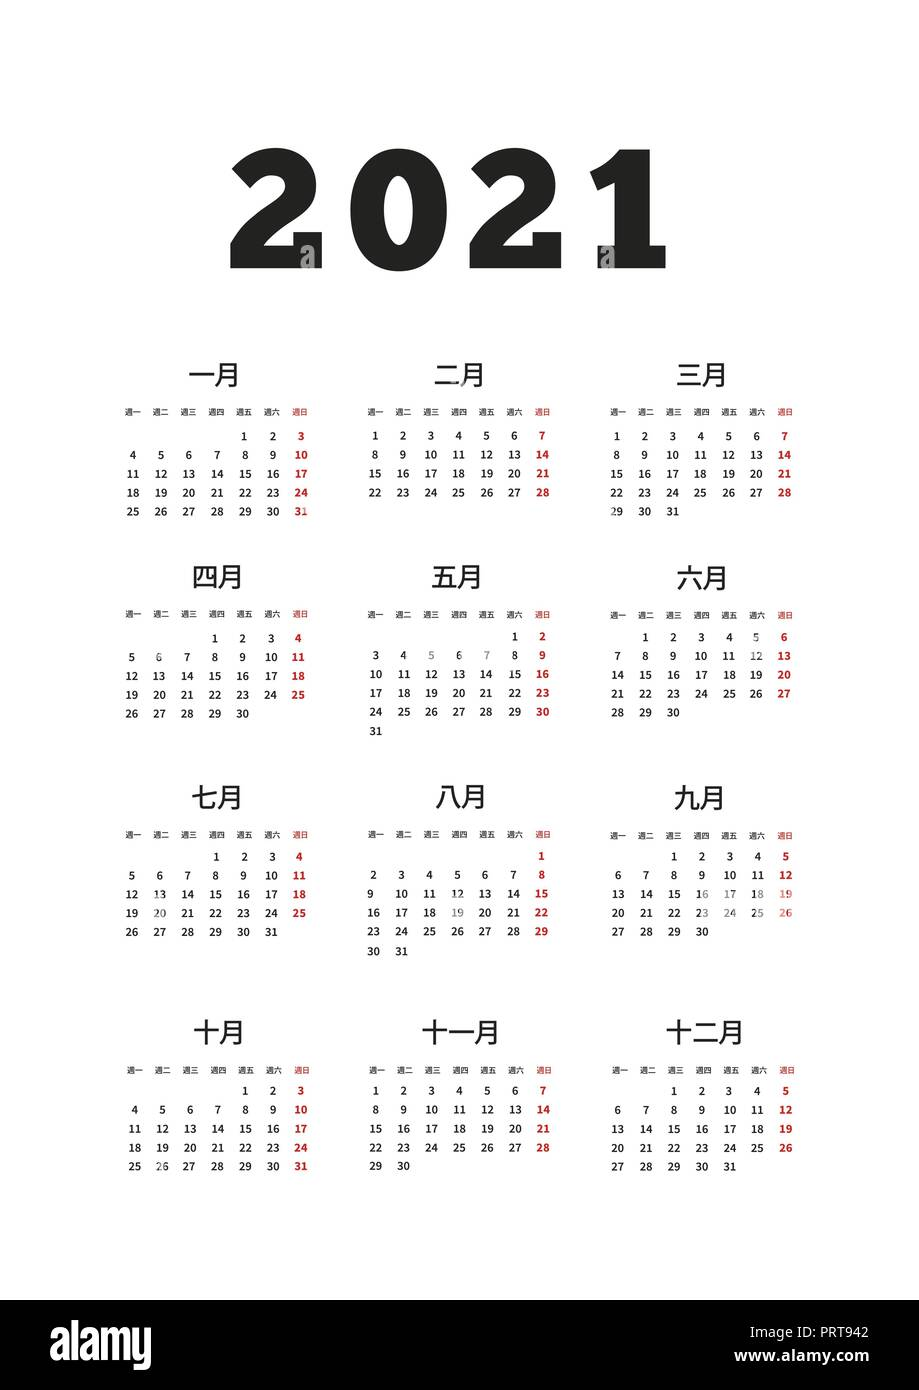 2021 year simple calendar on chinese language, A4 size vertical